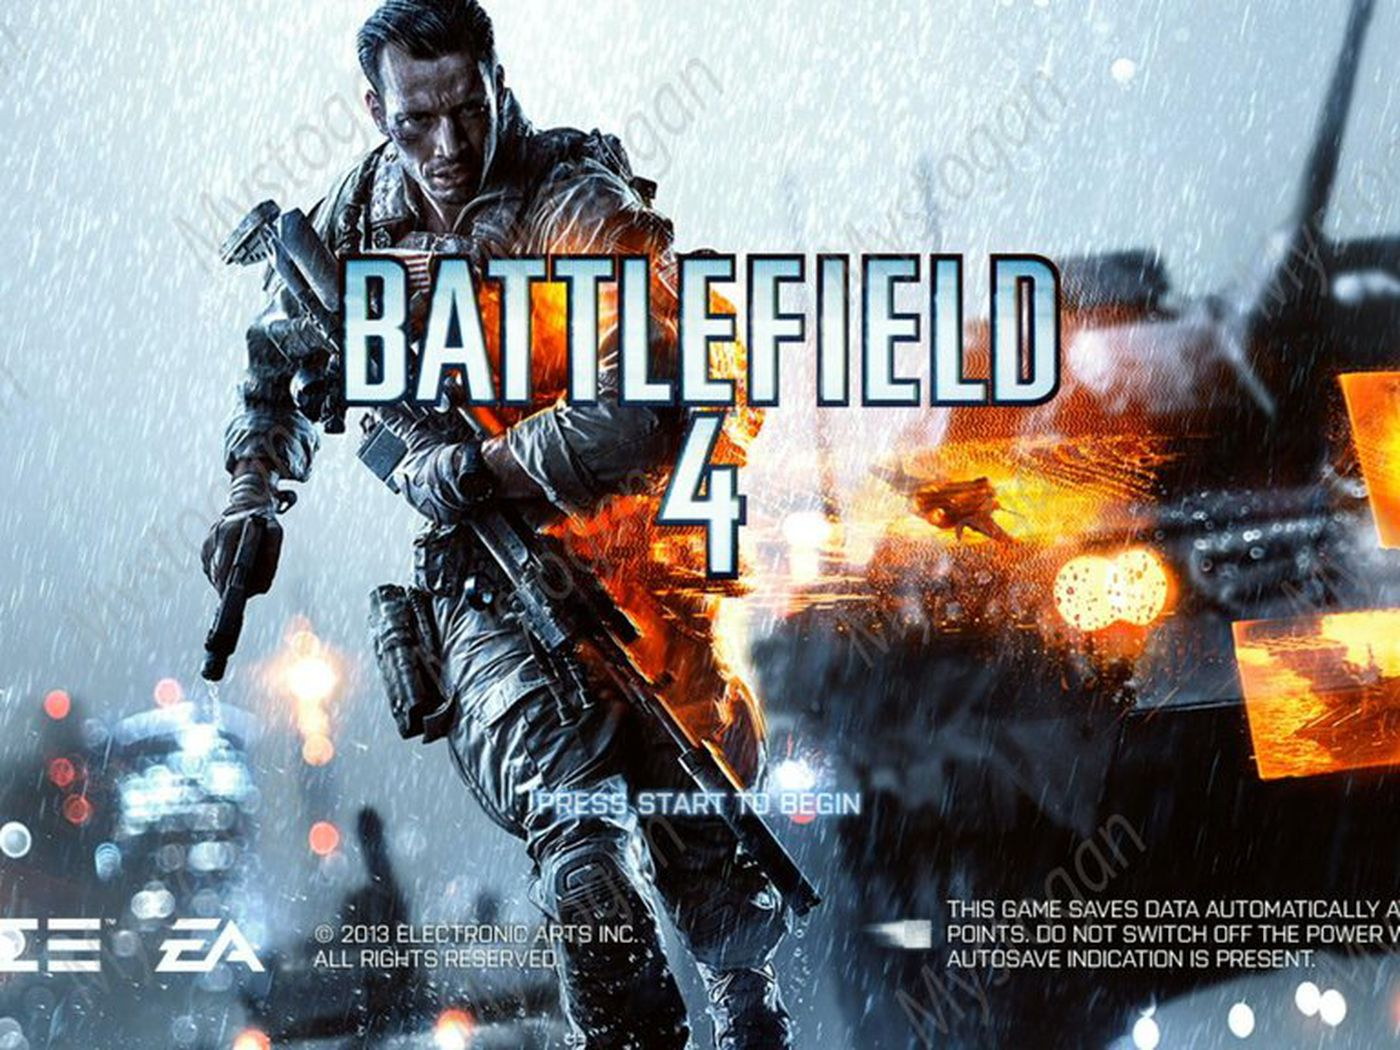 Report: Leaked Battlefield 4 screenshots show squads, weapons and